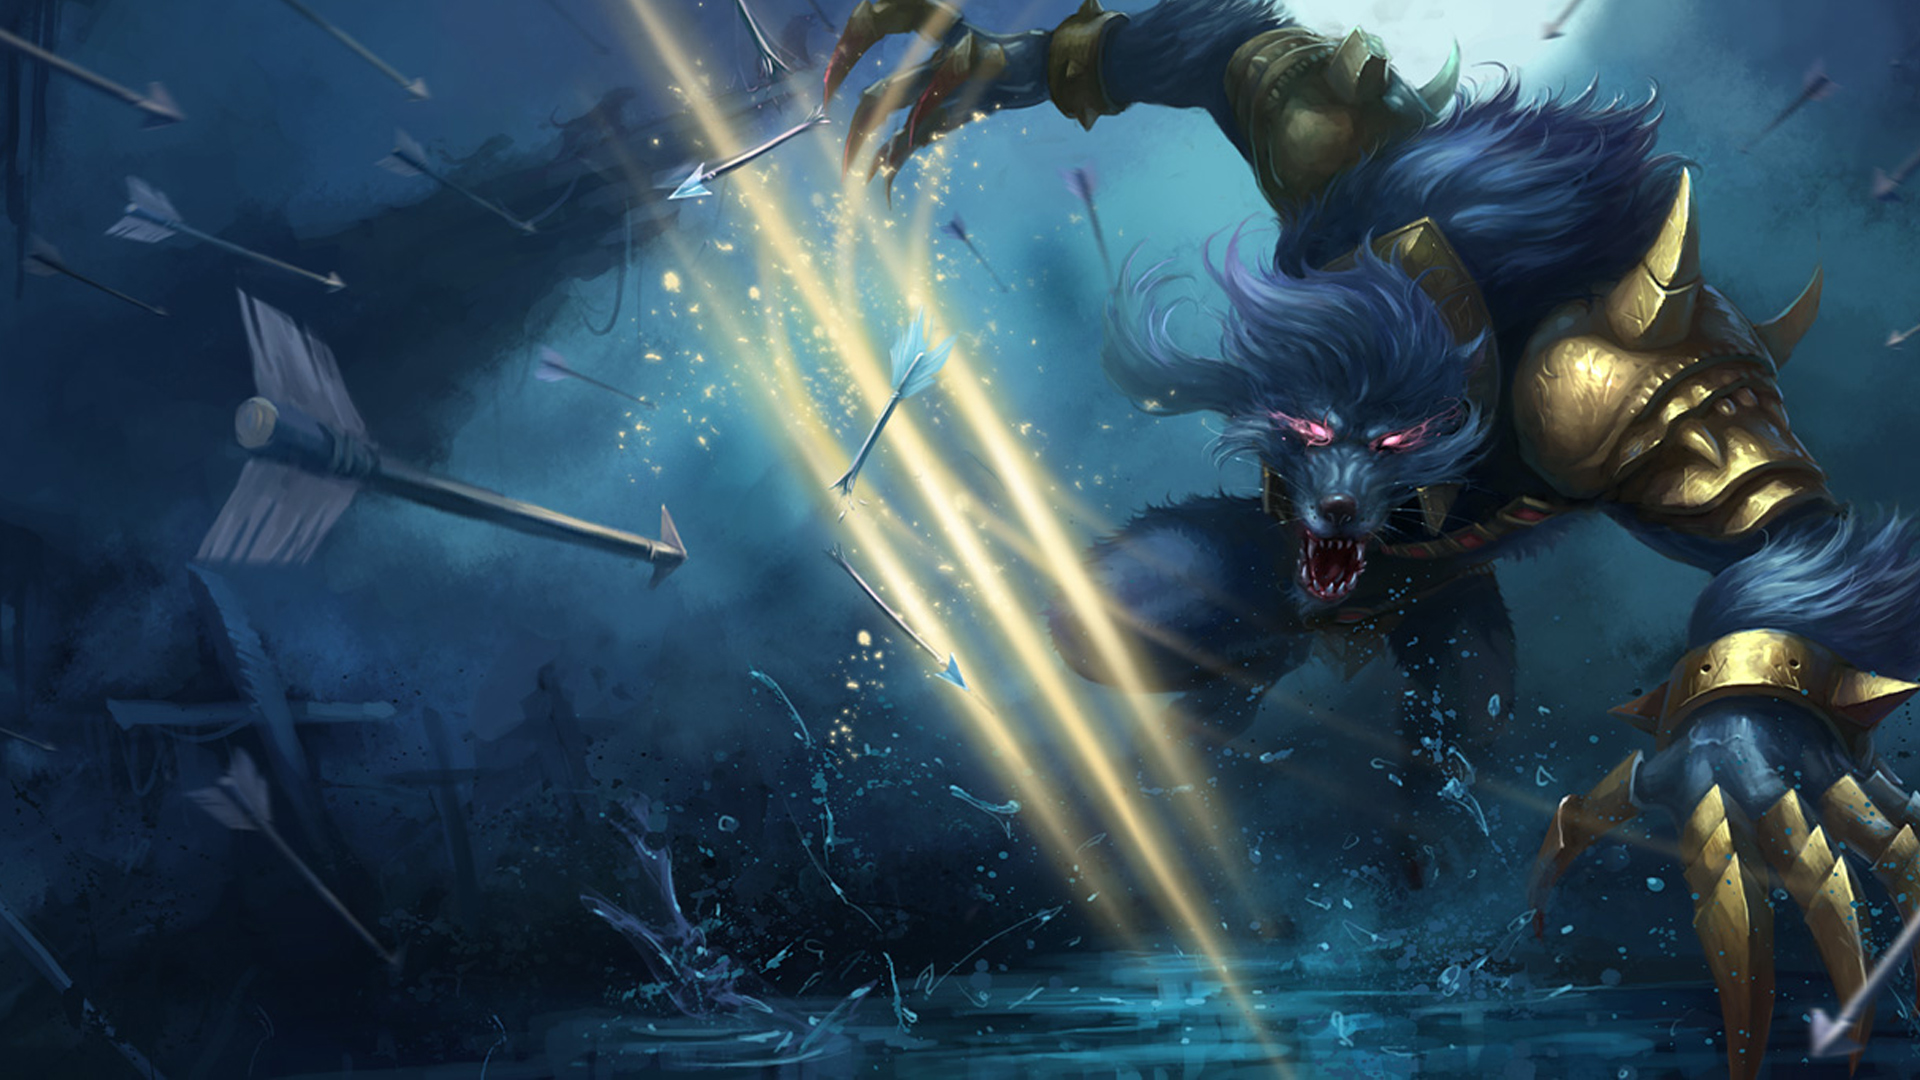 Free Download Hd Wallpaper 1080p League Of Legends Legends